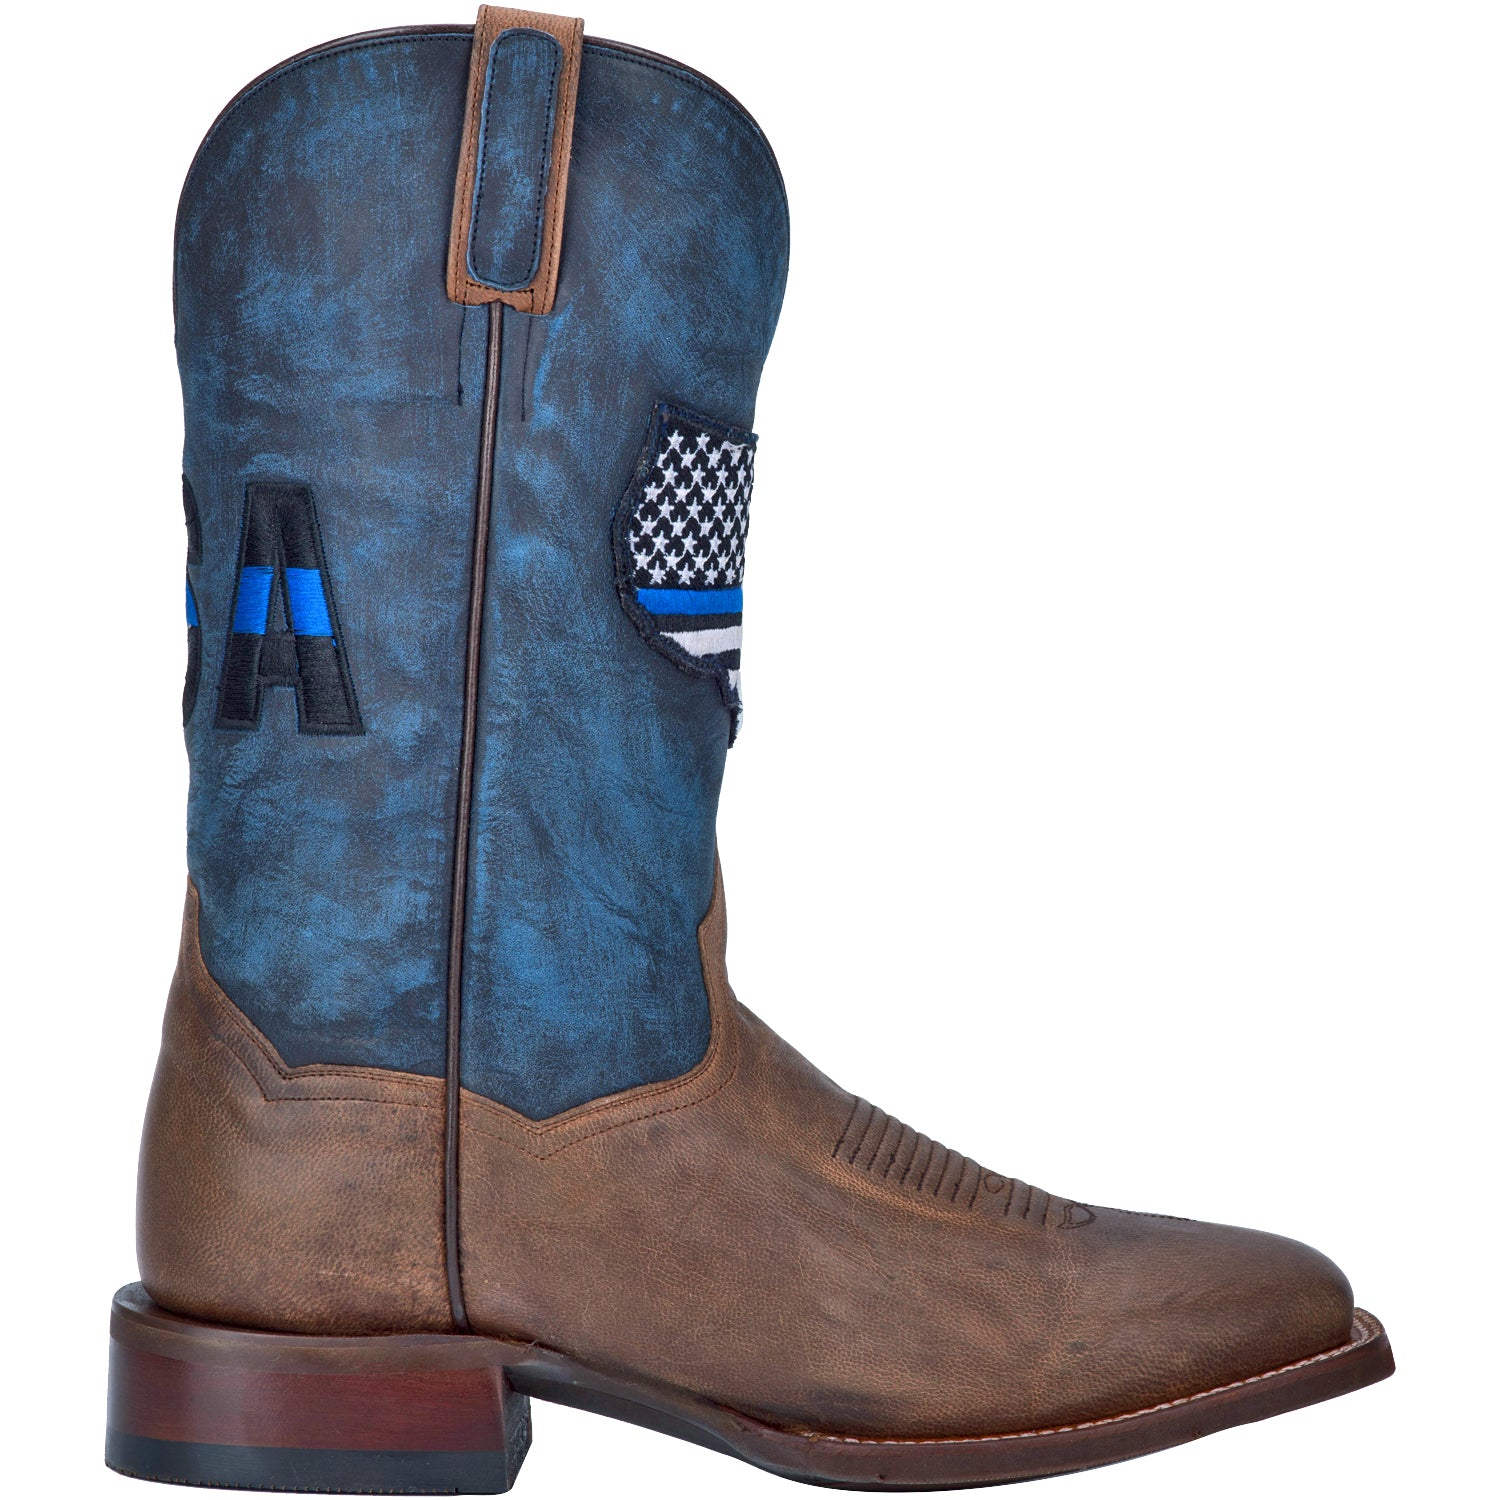 THIN BLUE LINE LEATHER BOOT